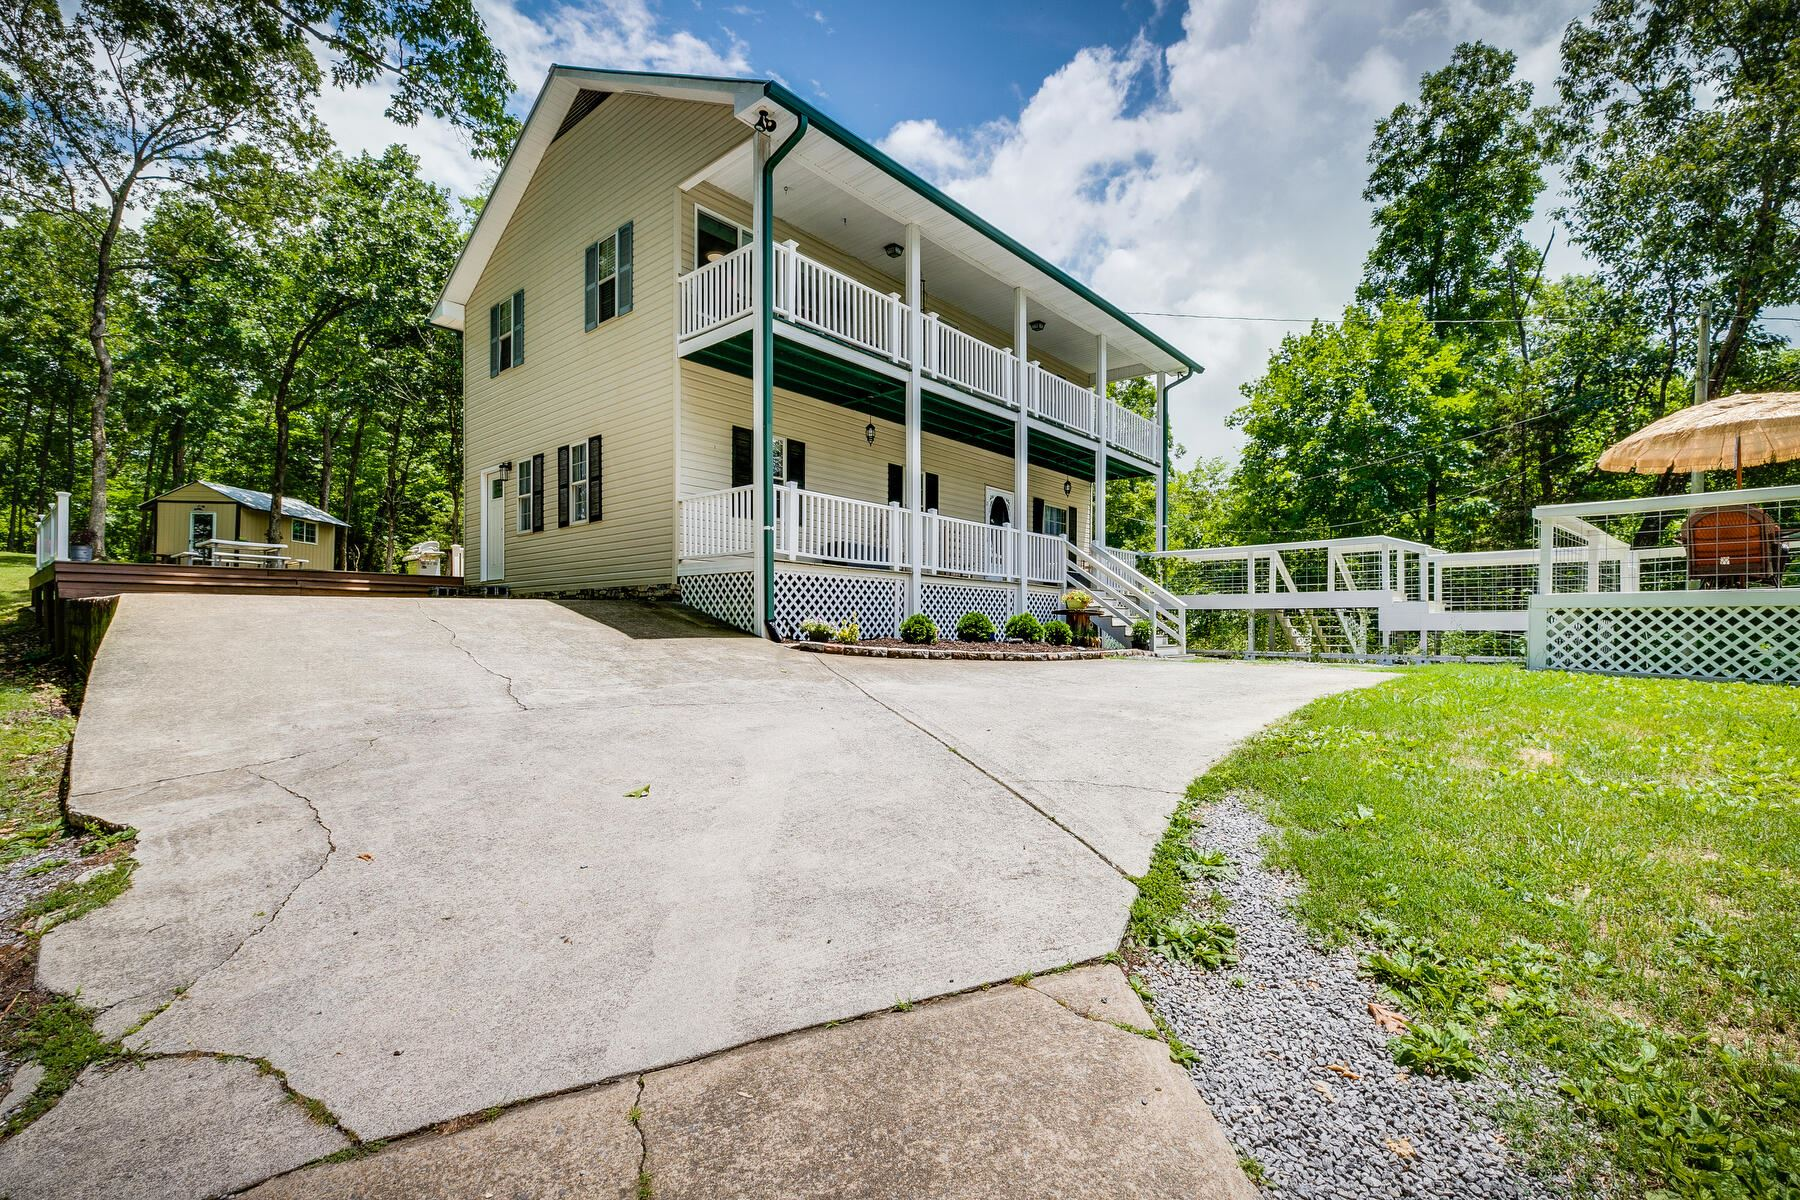 Photo of 1279 South Old State Highway 70, Rogersville, TN 37857 (MLS # 9924032)